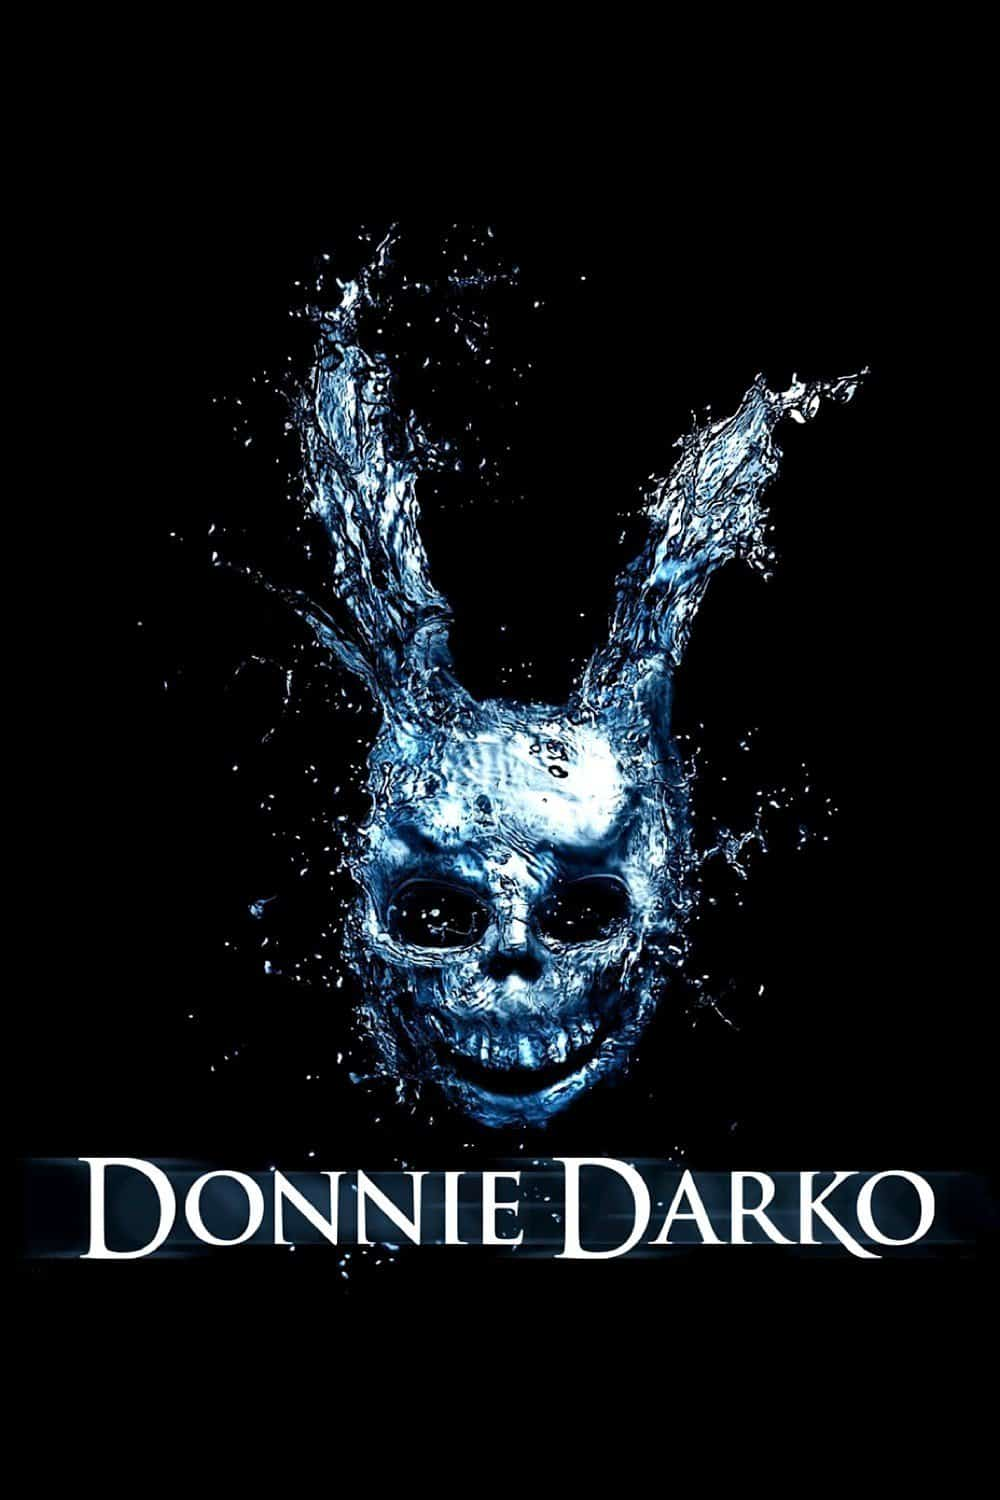 Donnie Darko, 2001